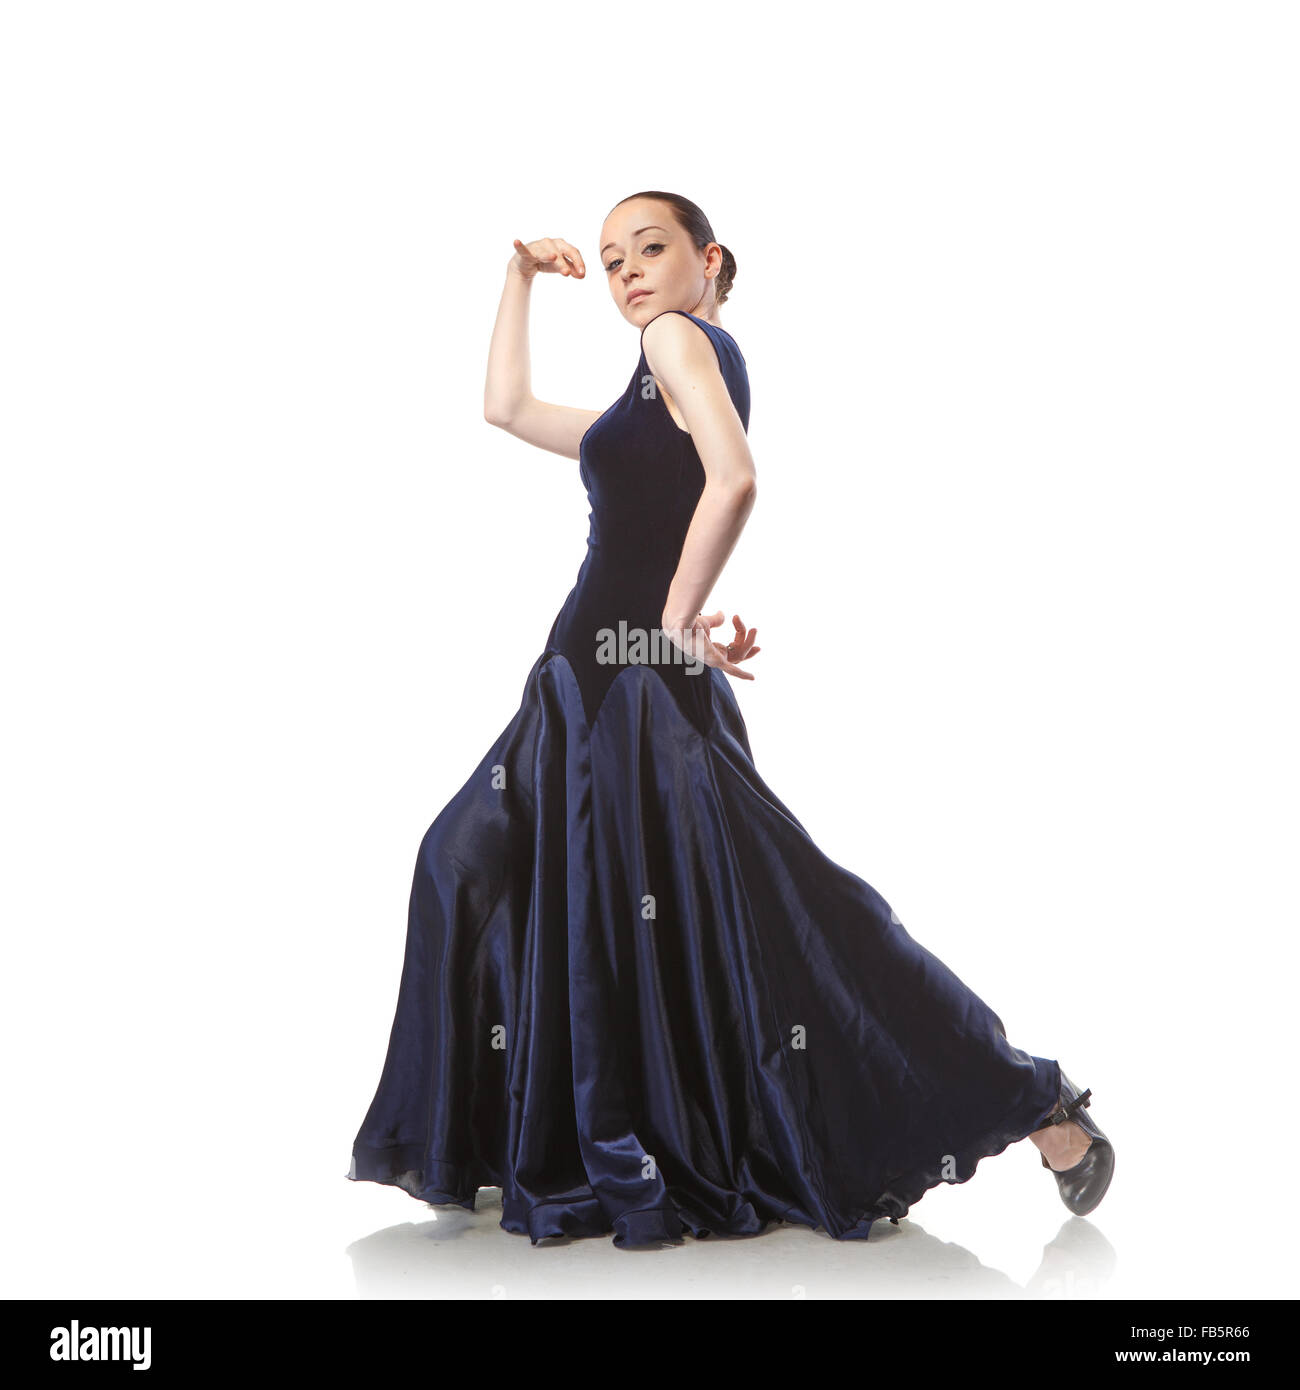 young woman dancing flamenco in blue dress isolated on white background - Stock Image